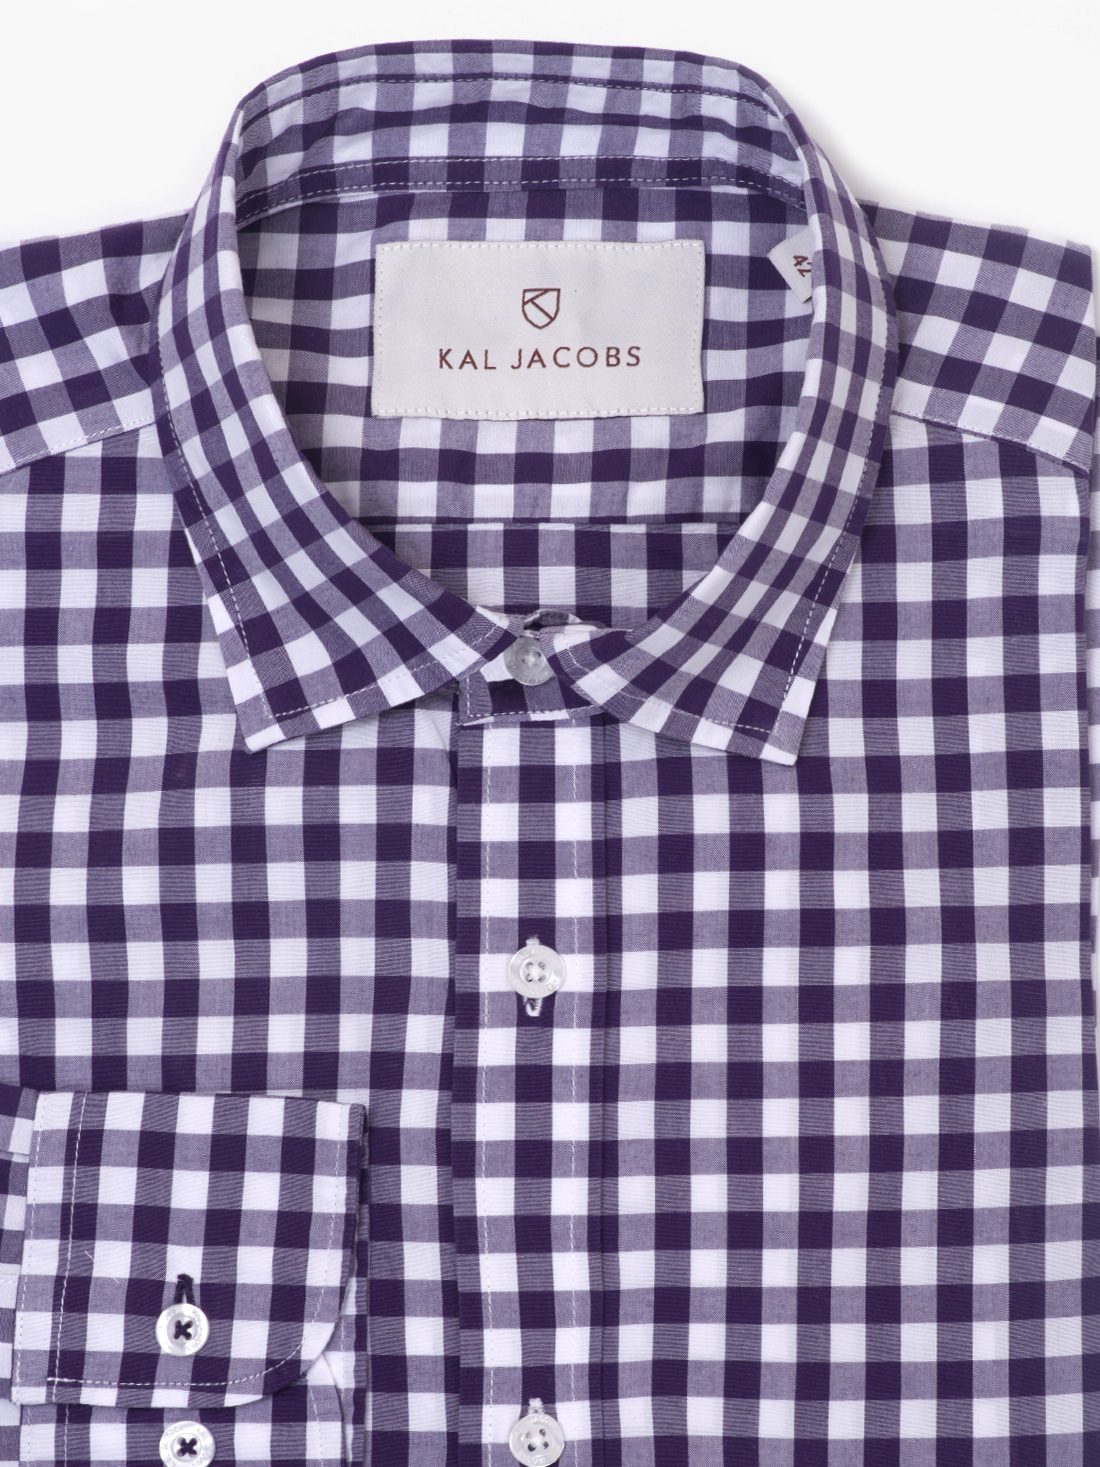 Free shipping BOTH ways on gingham shirts for men, from our vast selection of styles. Fast delivery, and 24/7/ real-person service with a smile. Click or call